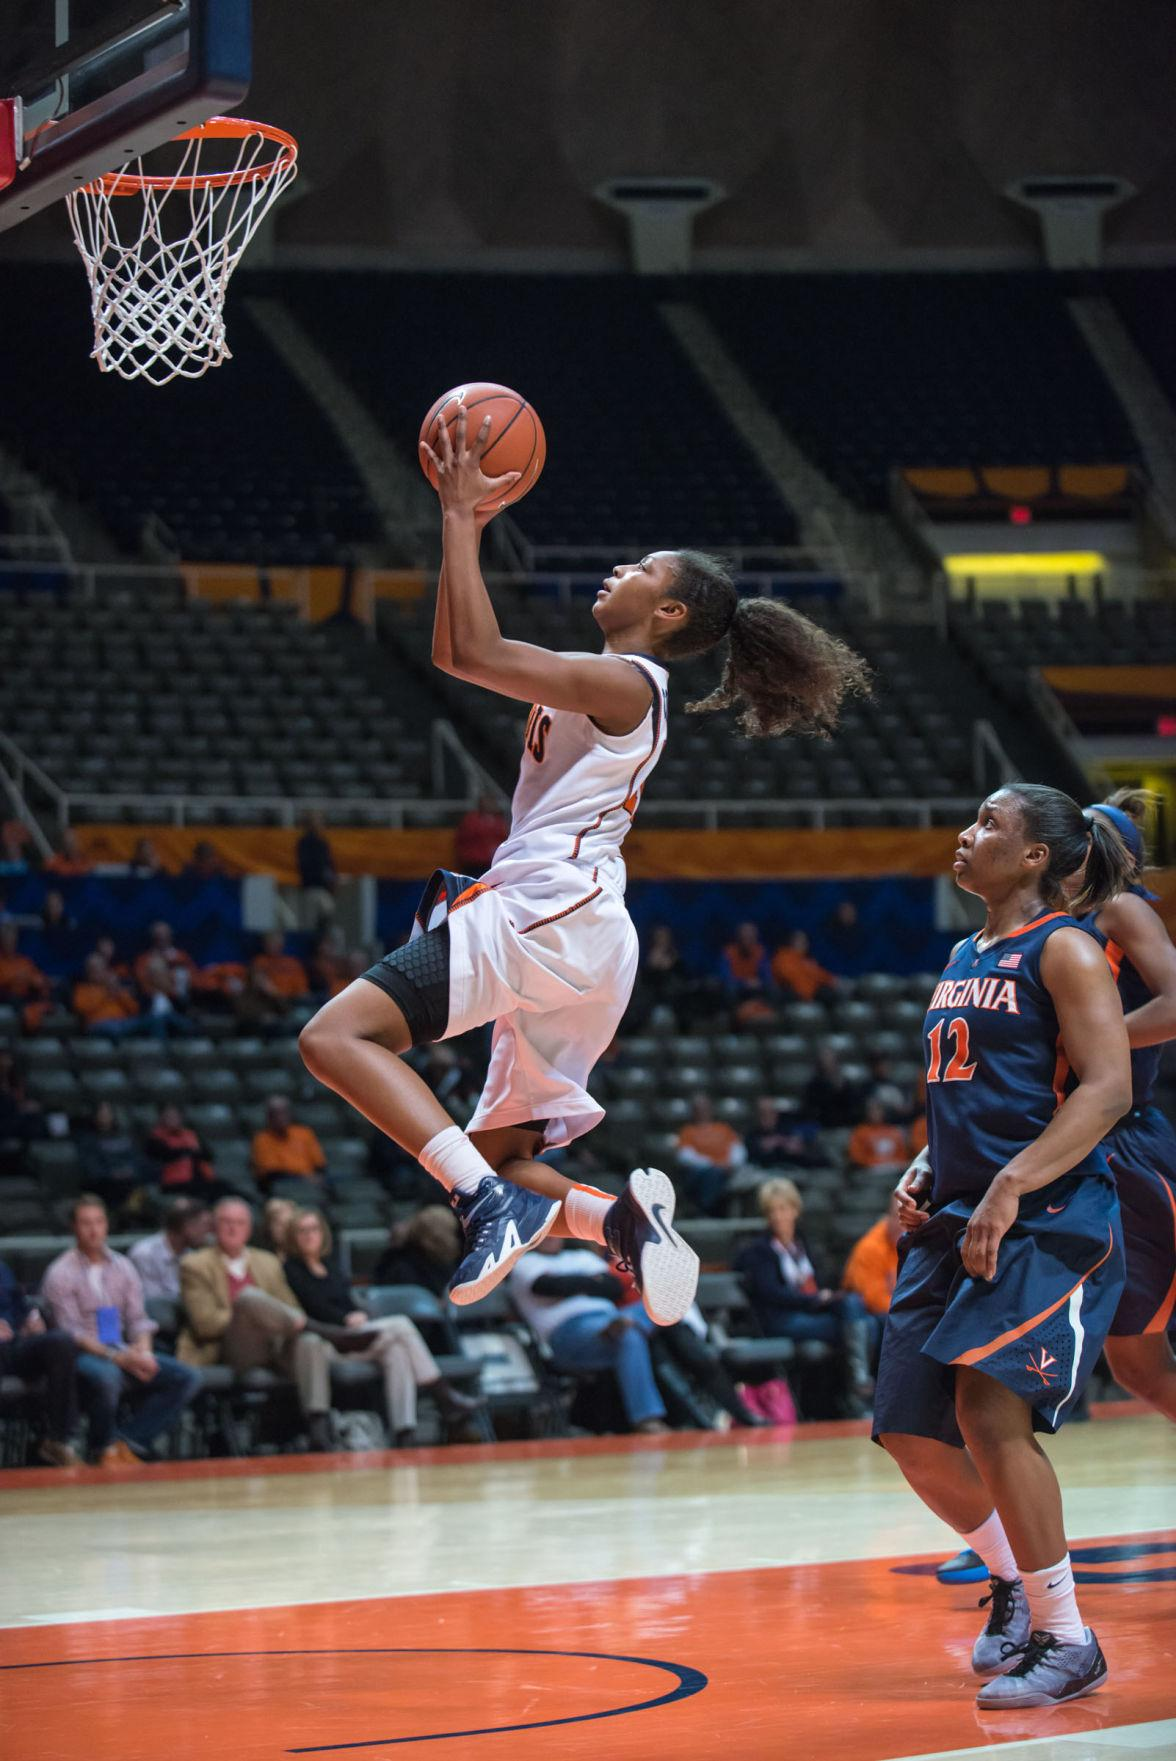 Illinois' Amarah Coleman has stood out through her consistent performances this season and is currently playing sixth in the rotation.